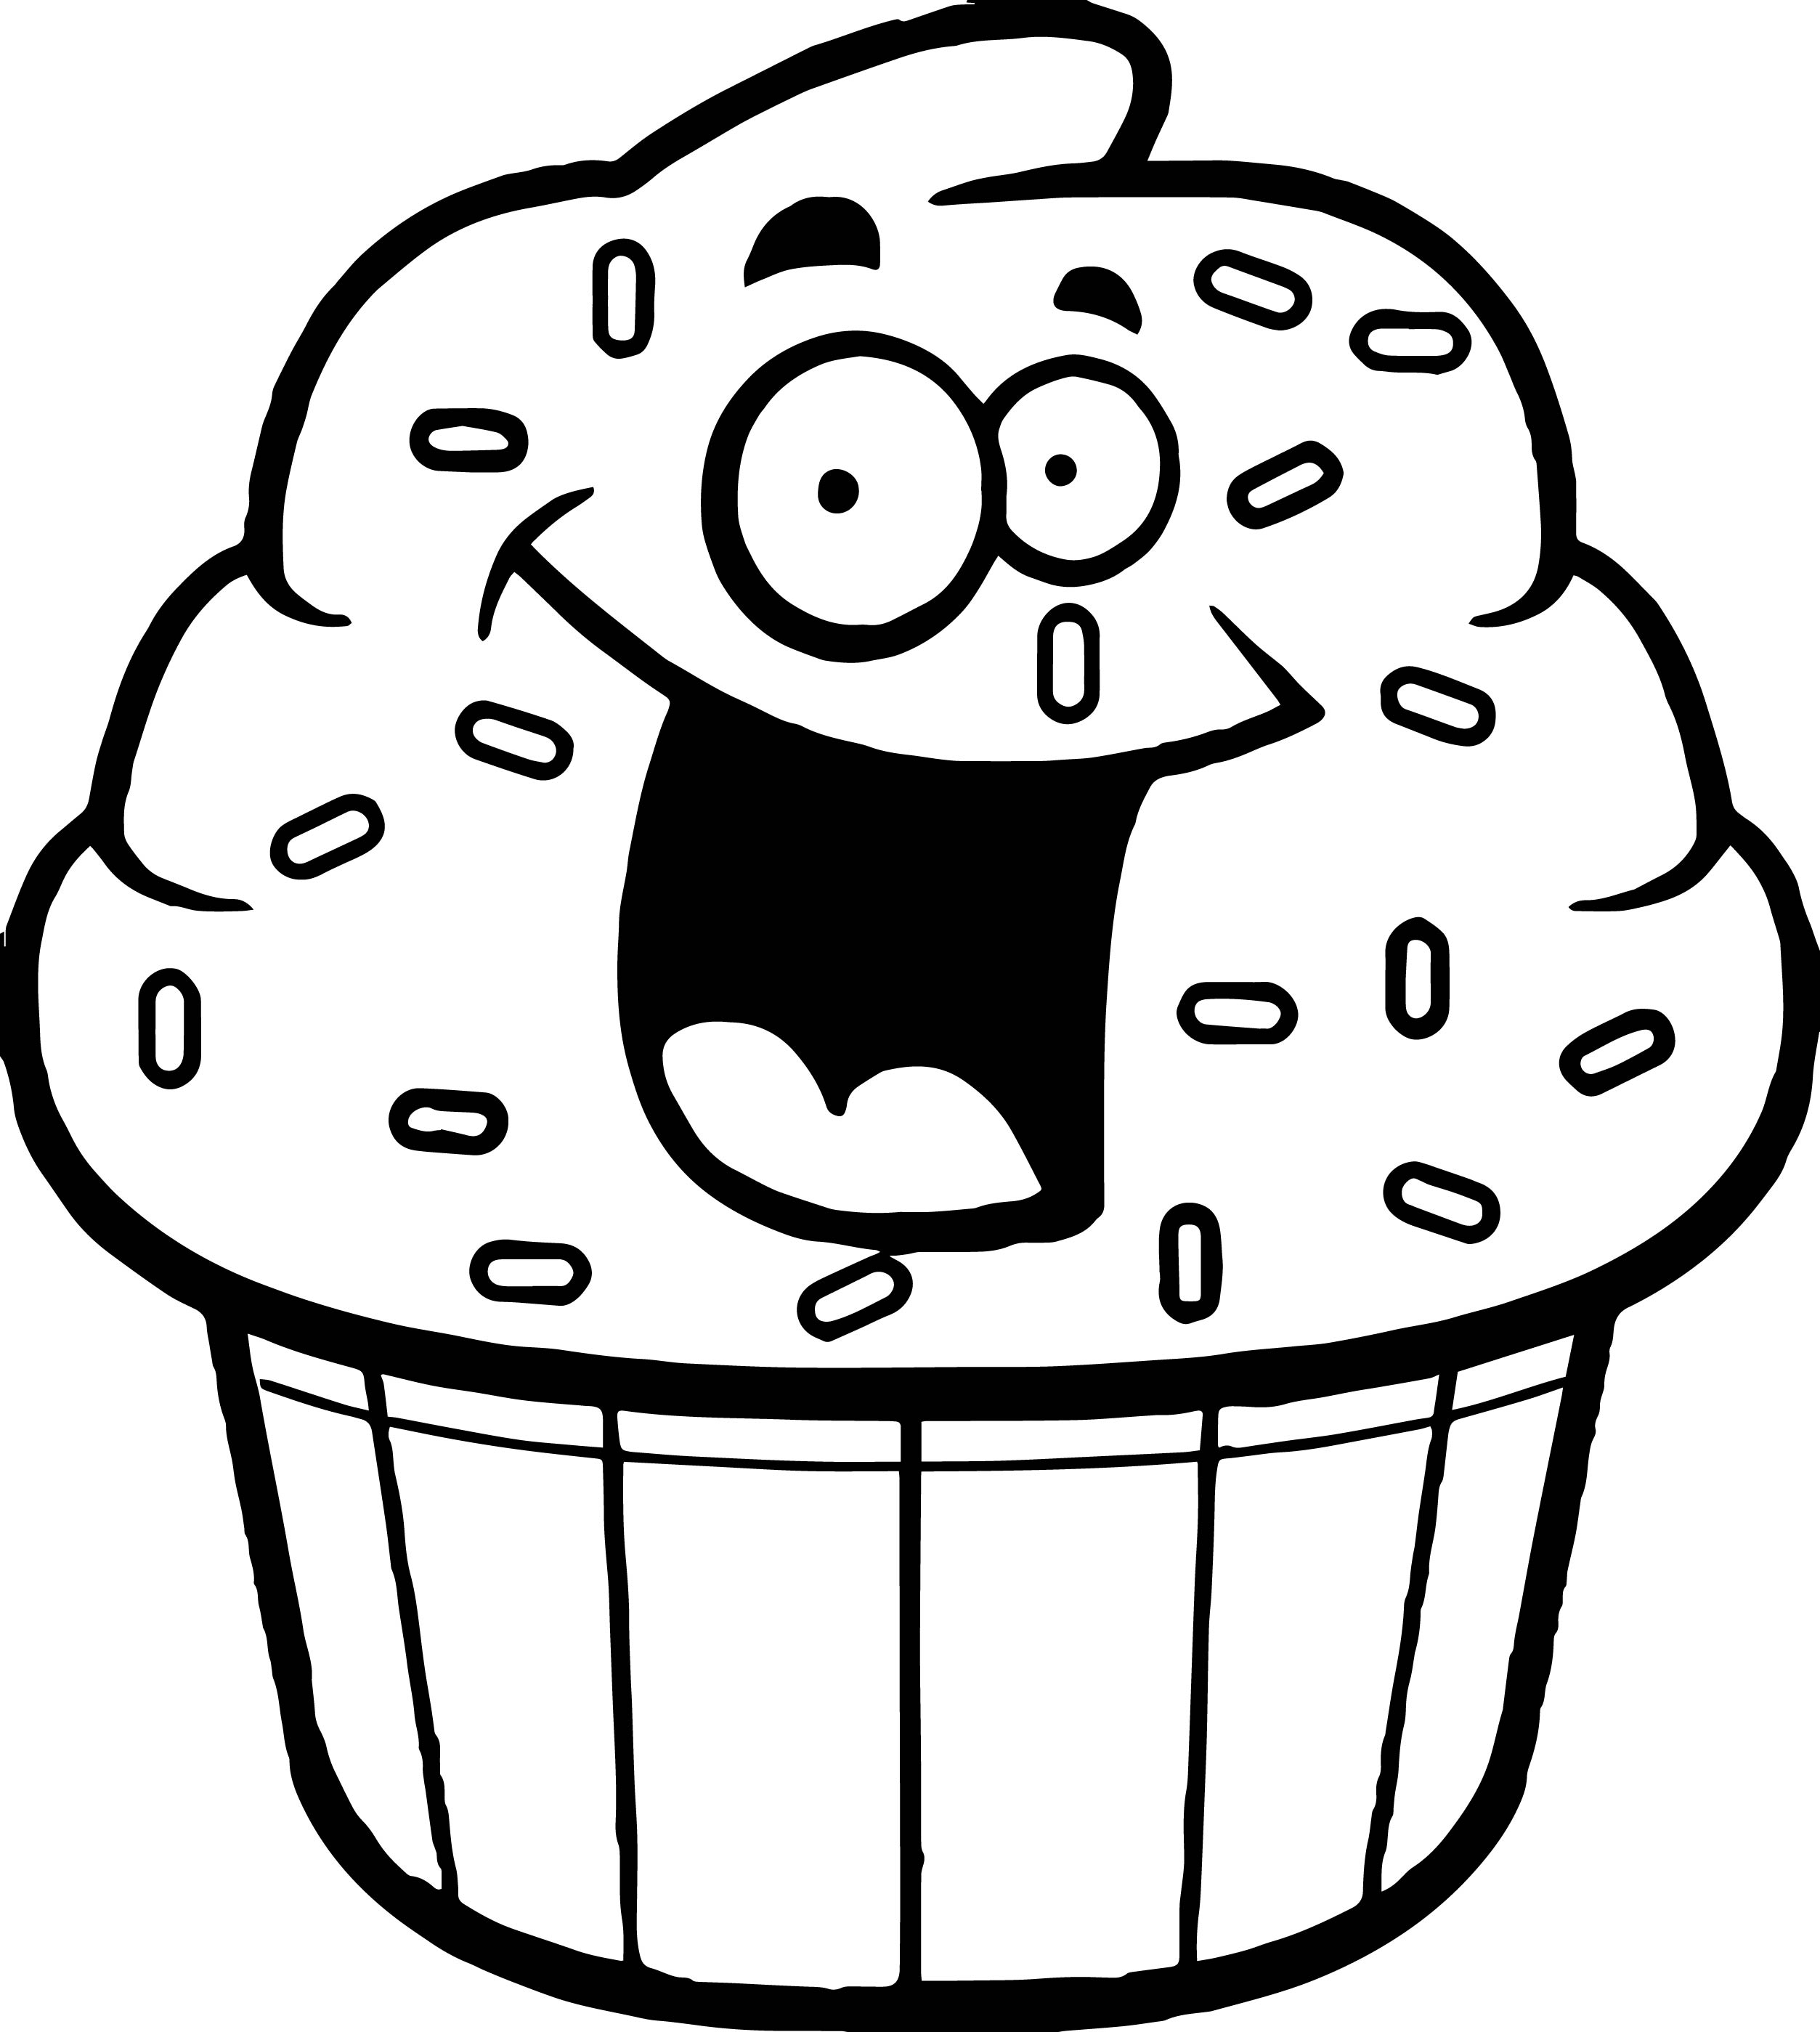 Cupcake Outline | Free download best Cupcake Outline on ClipArtMag.com